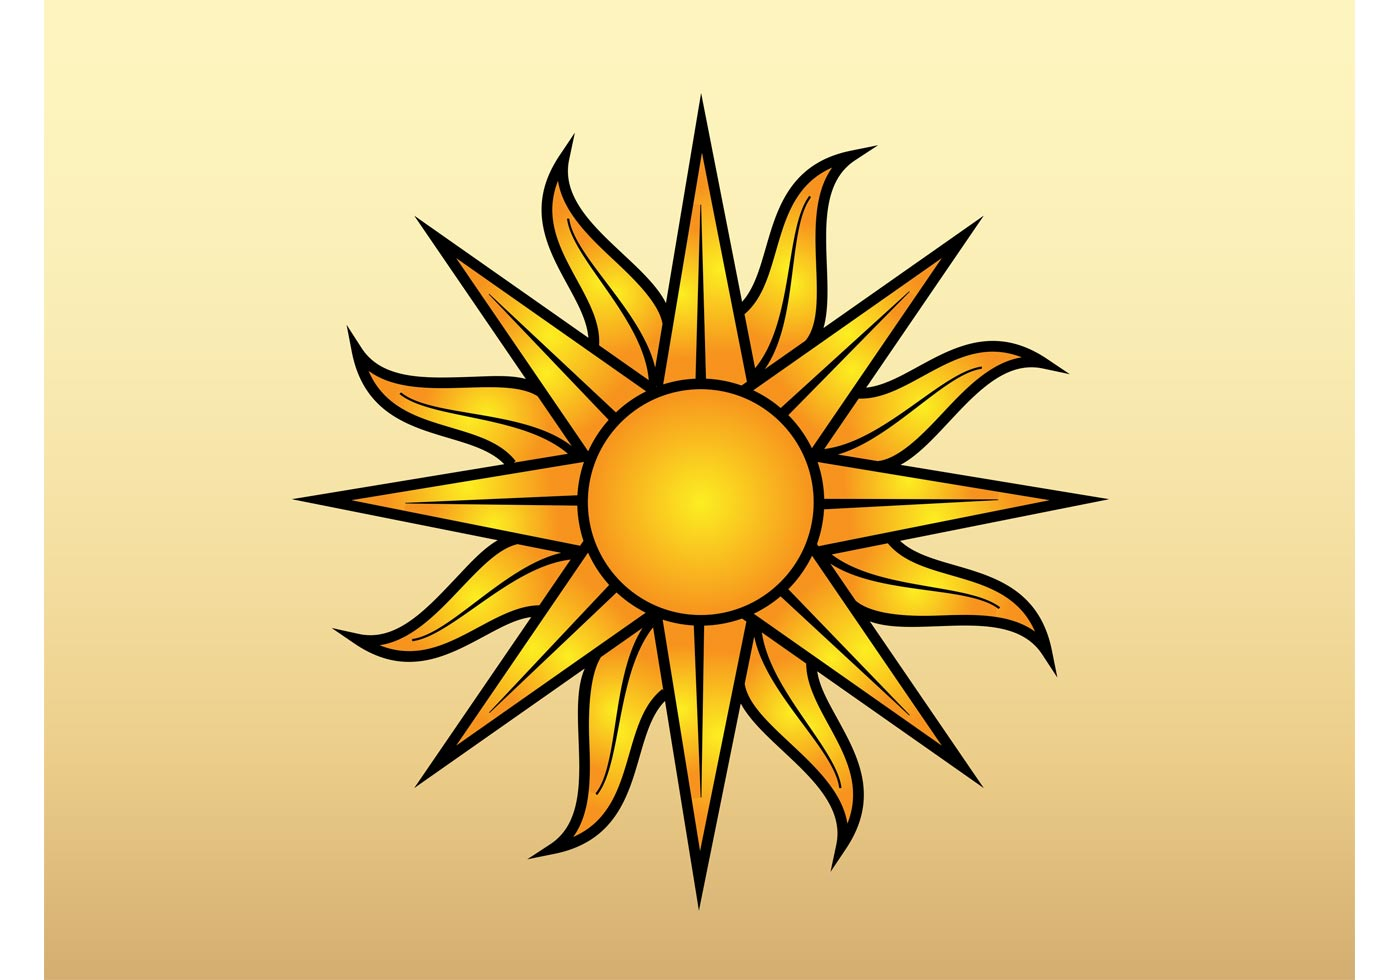 Sun Vector Graphic - Download Free Vector Art, Stock ...